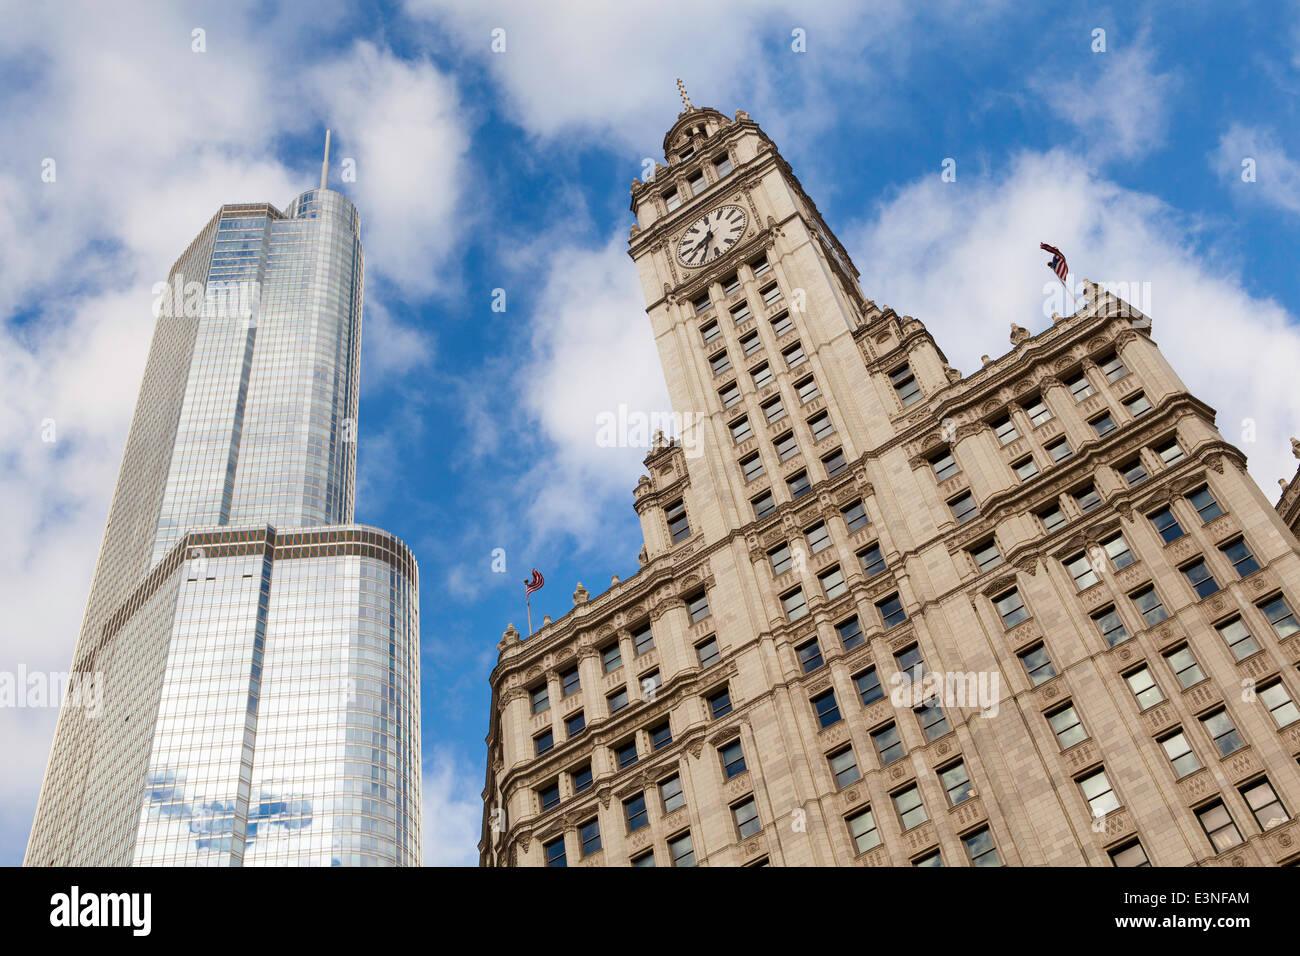 Downtown architecture, Chicago, Illinois, United States of America - Stock Image